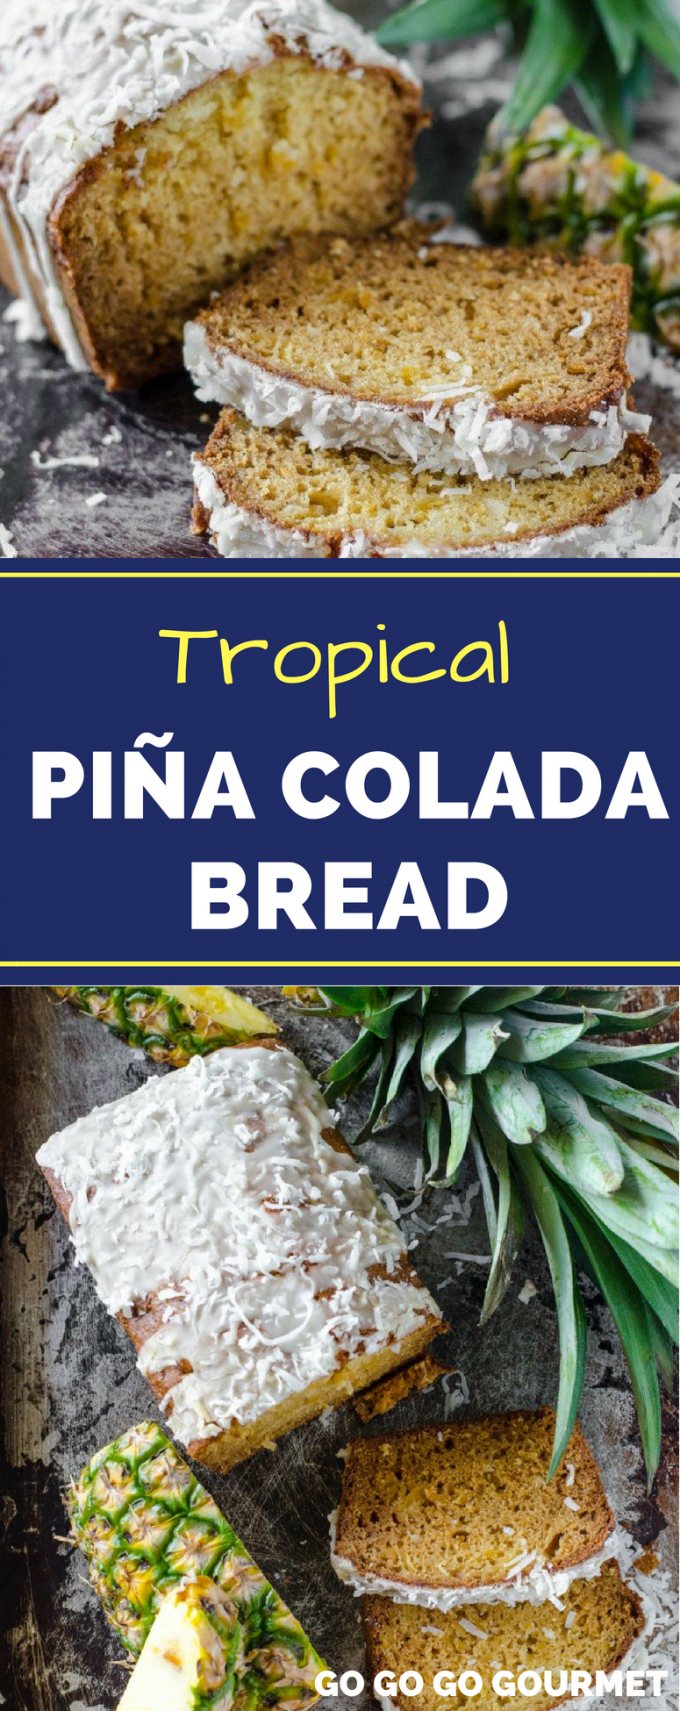 With crushed pineapple and coconut, this Pina Colada bread recipe will take you to the tropics with every slice! It's tropical flavors make an excellent dessert! #pinacoladabread #pineapplecoconutcread #pineappleloaf #gogogogourmet via @gogogogourmet